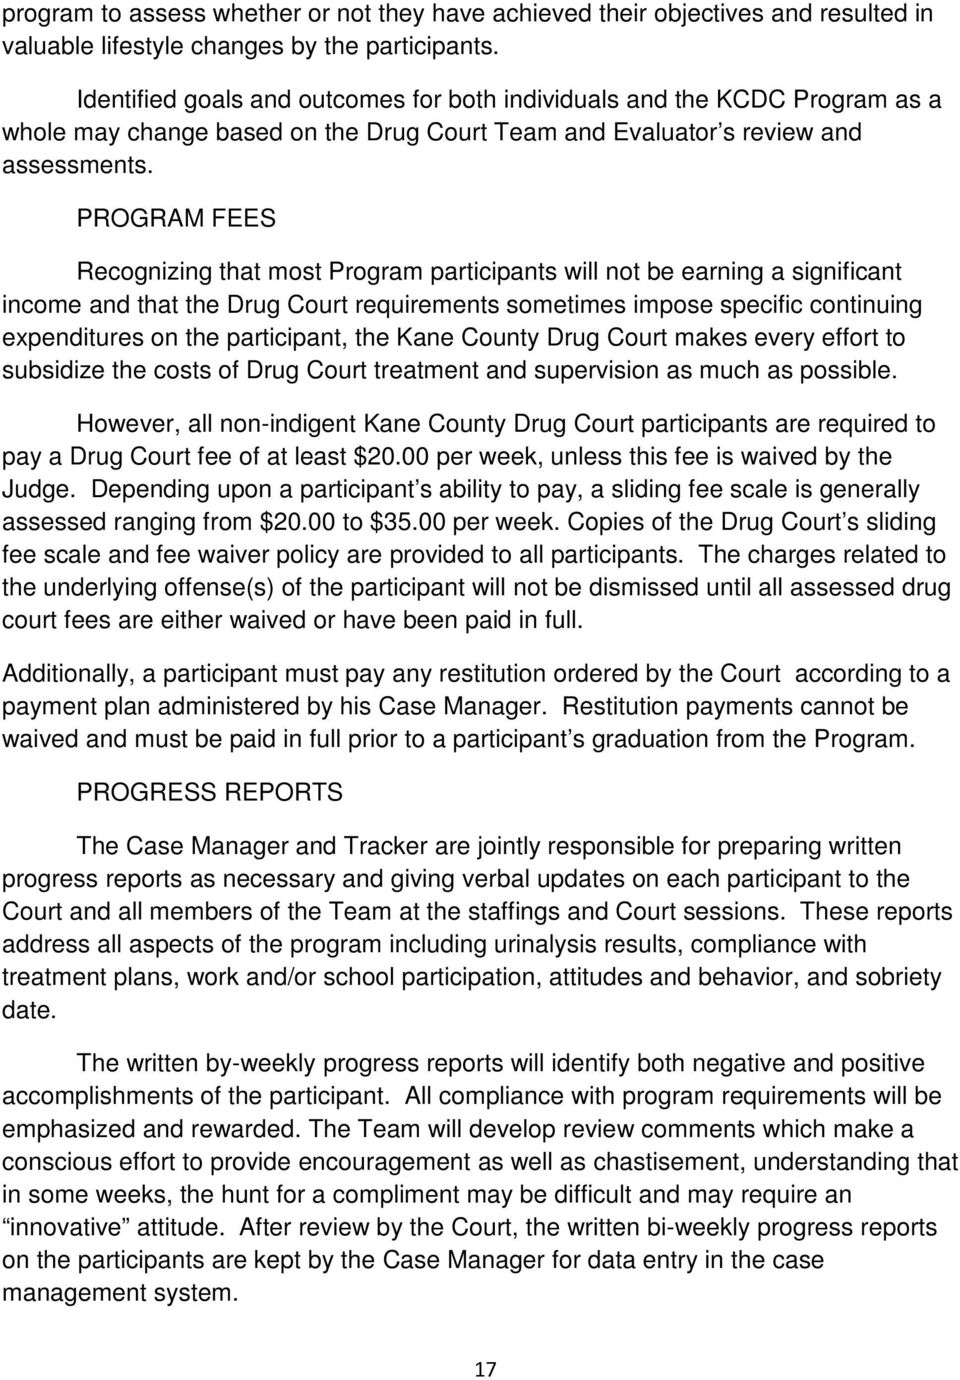 PROGRAM FEES Recognizing that most Program participants will not be earning a significant income and that the Drug Court requirements sometimes impose specific continuing expenditures on the